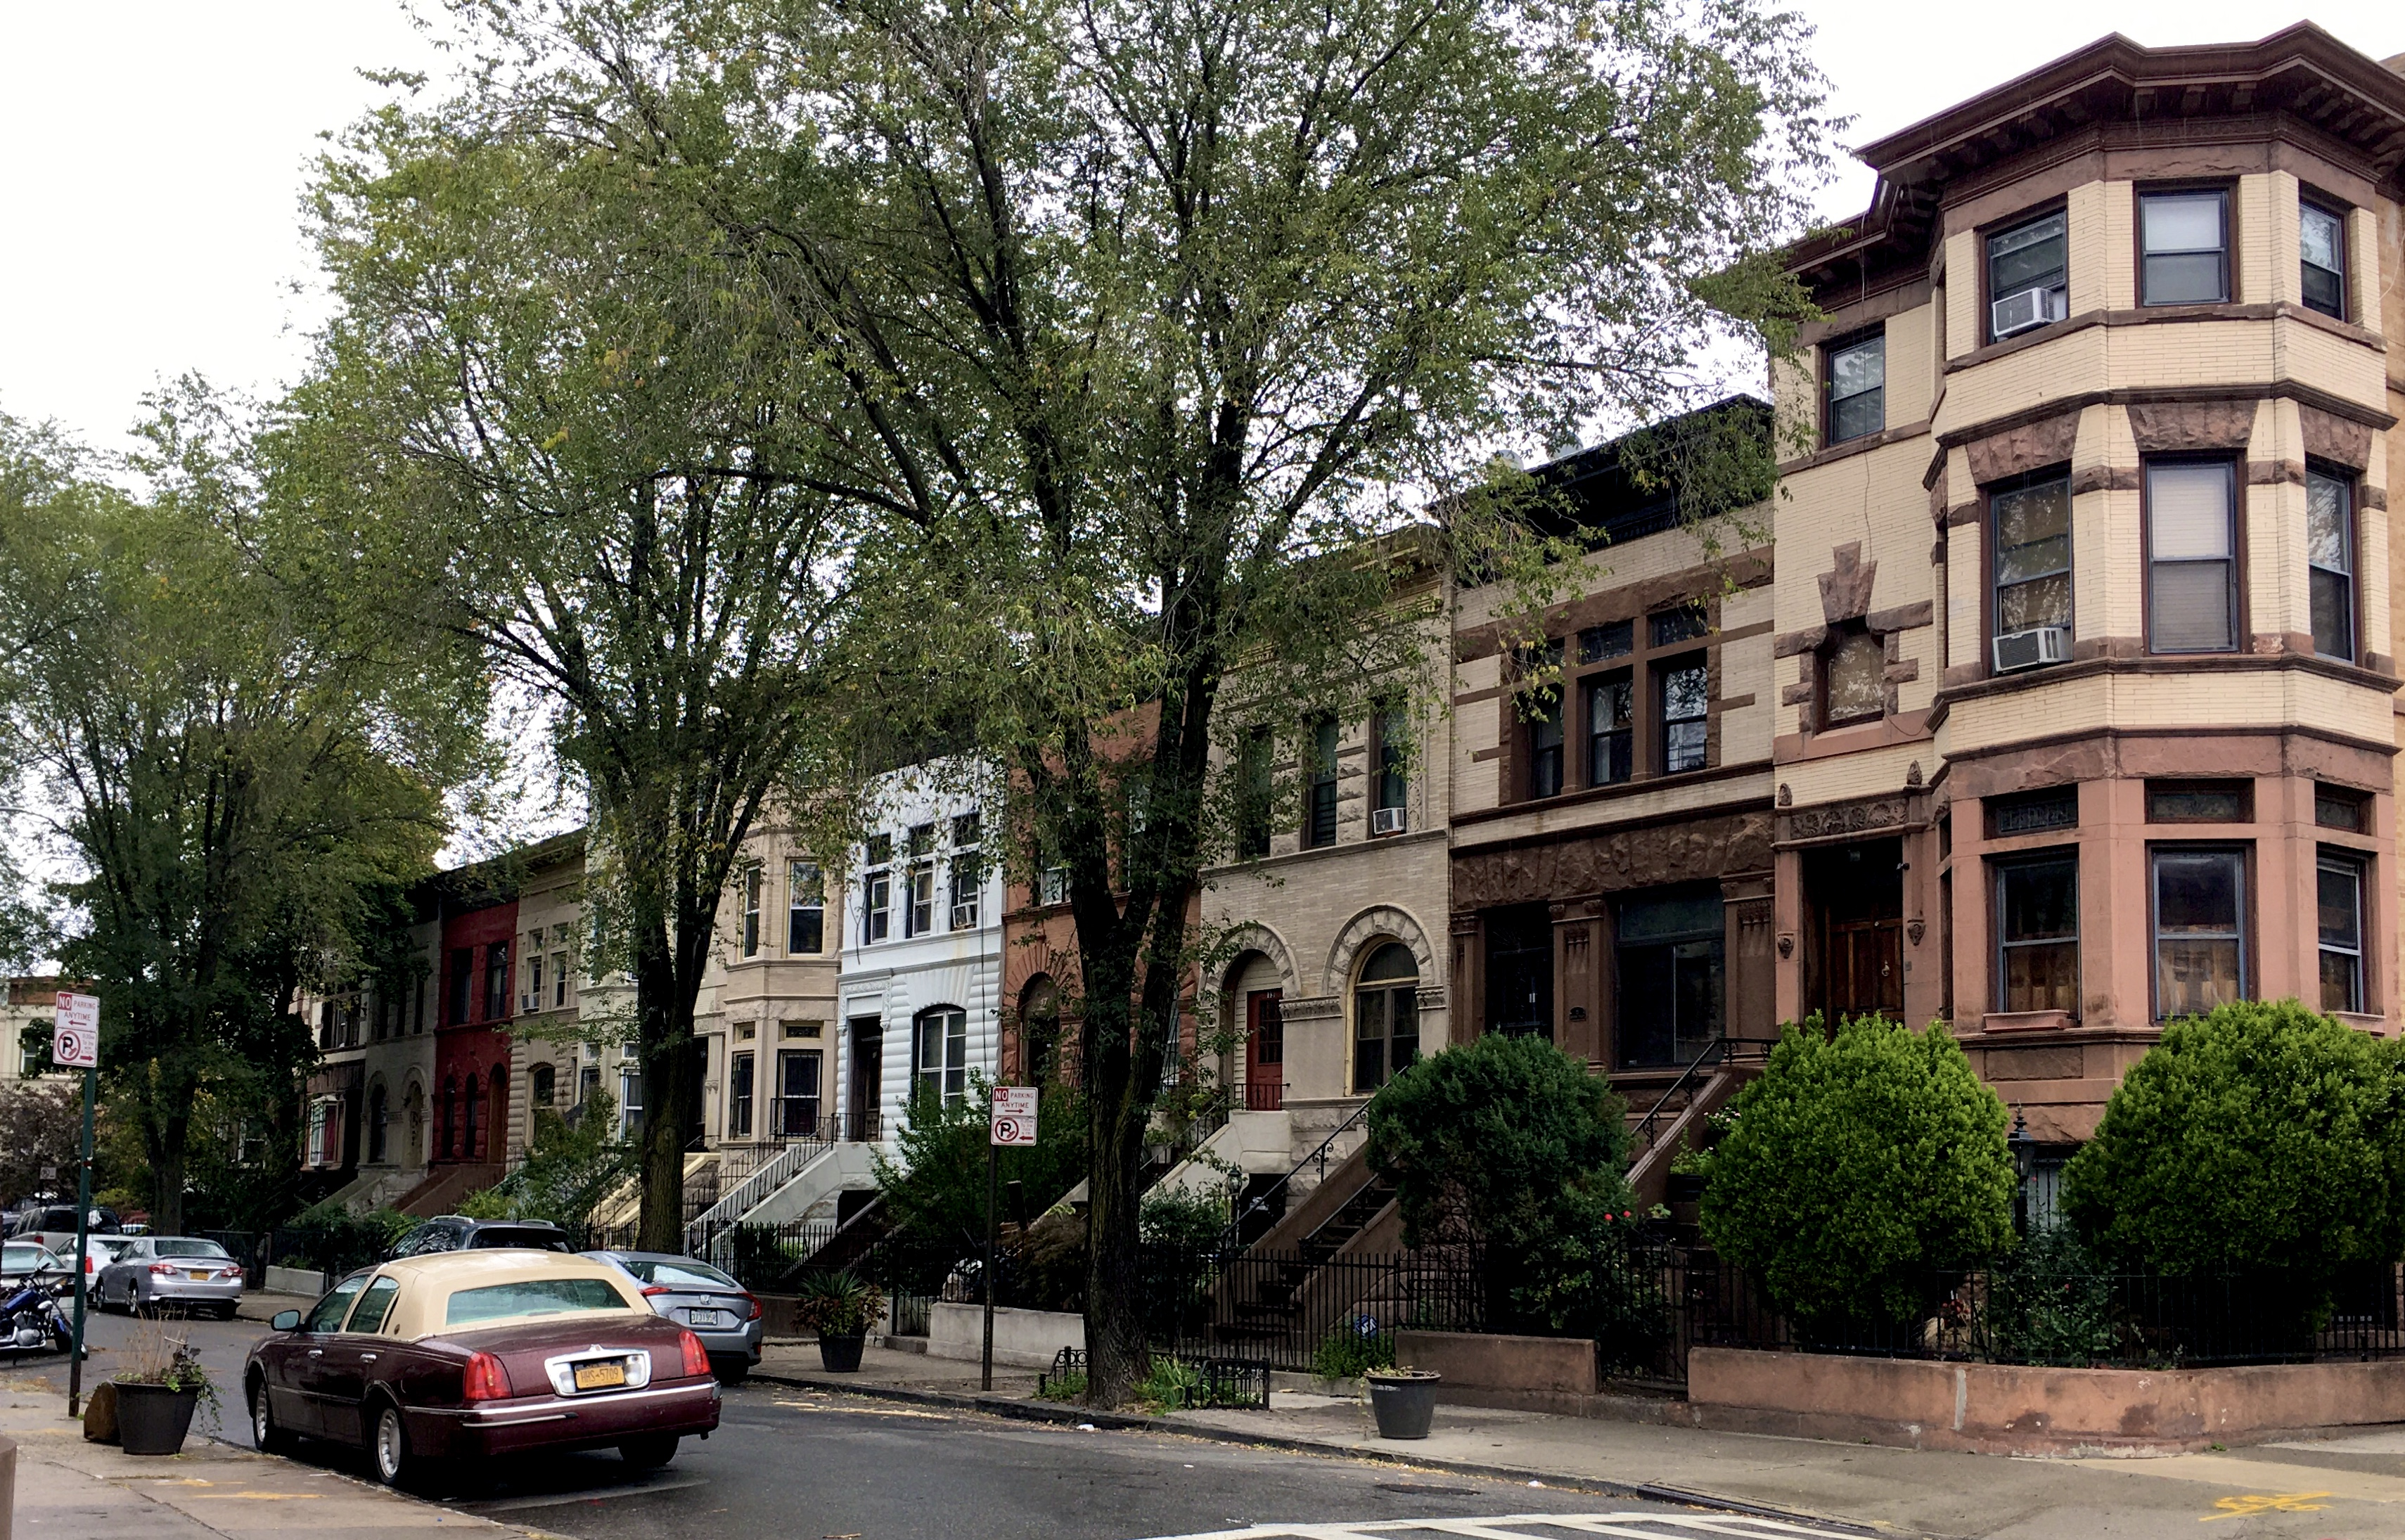 This single-block street is Revere Place, as seen from the Bergen Street sidewalk. Eagle photo by Lore Croghan